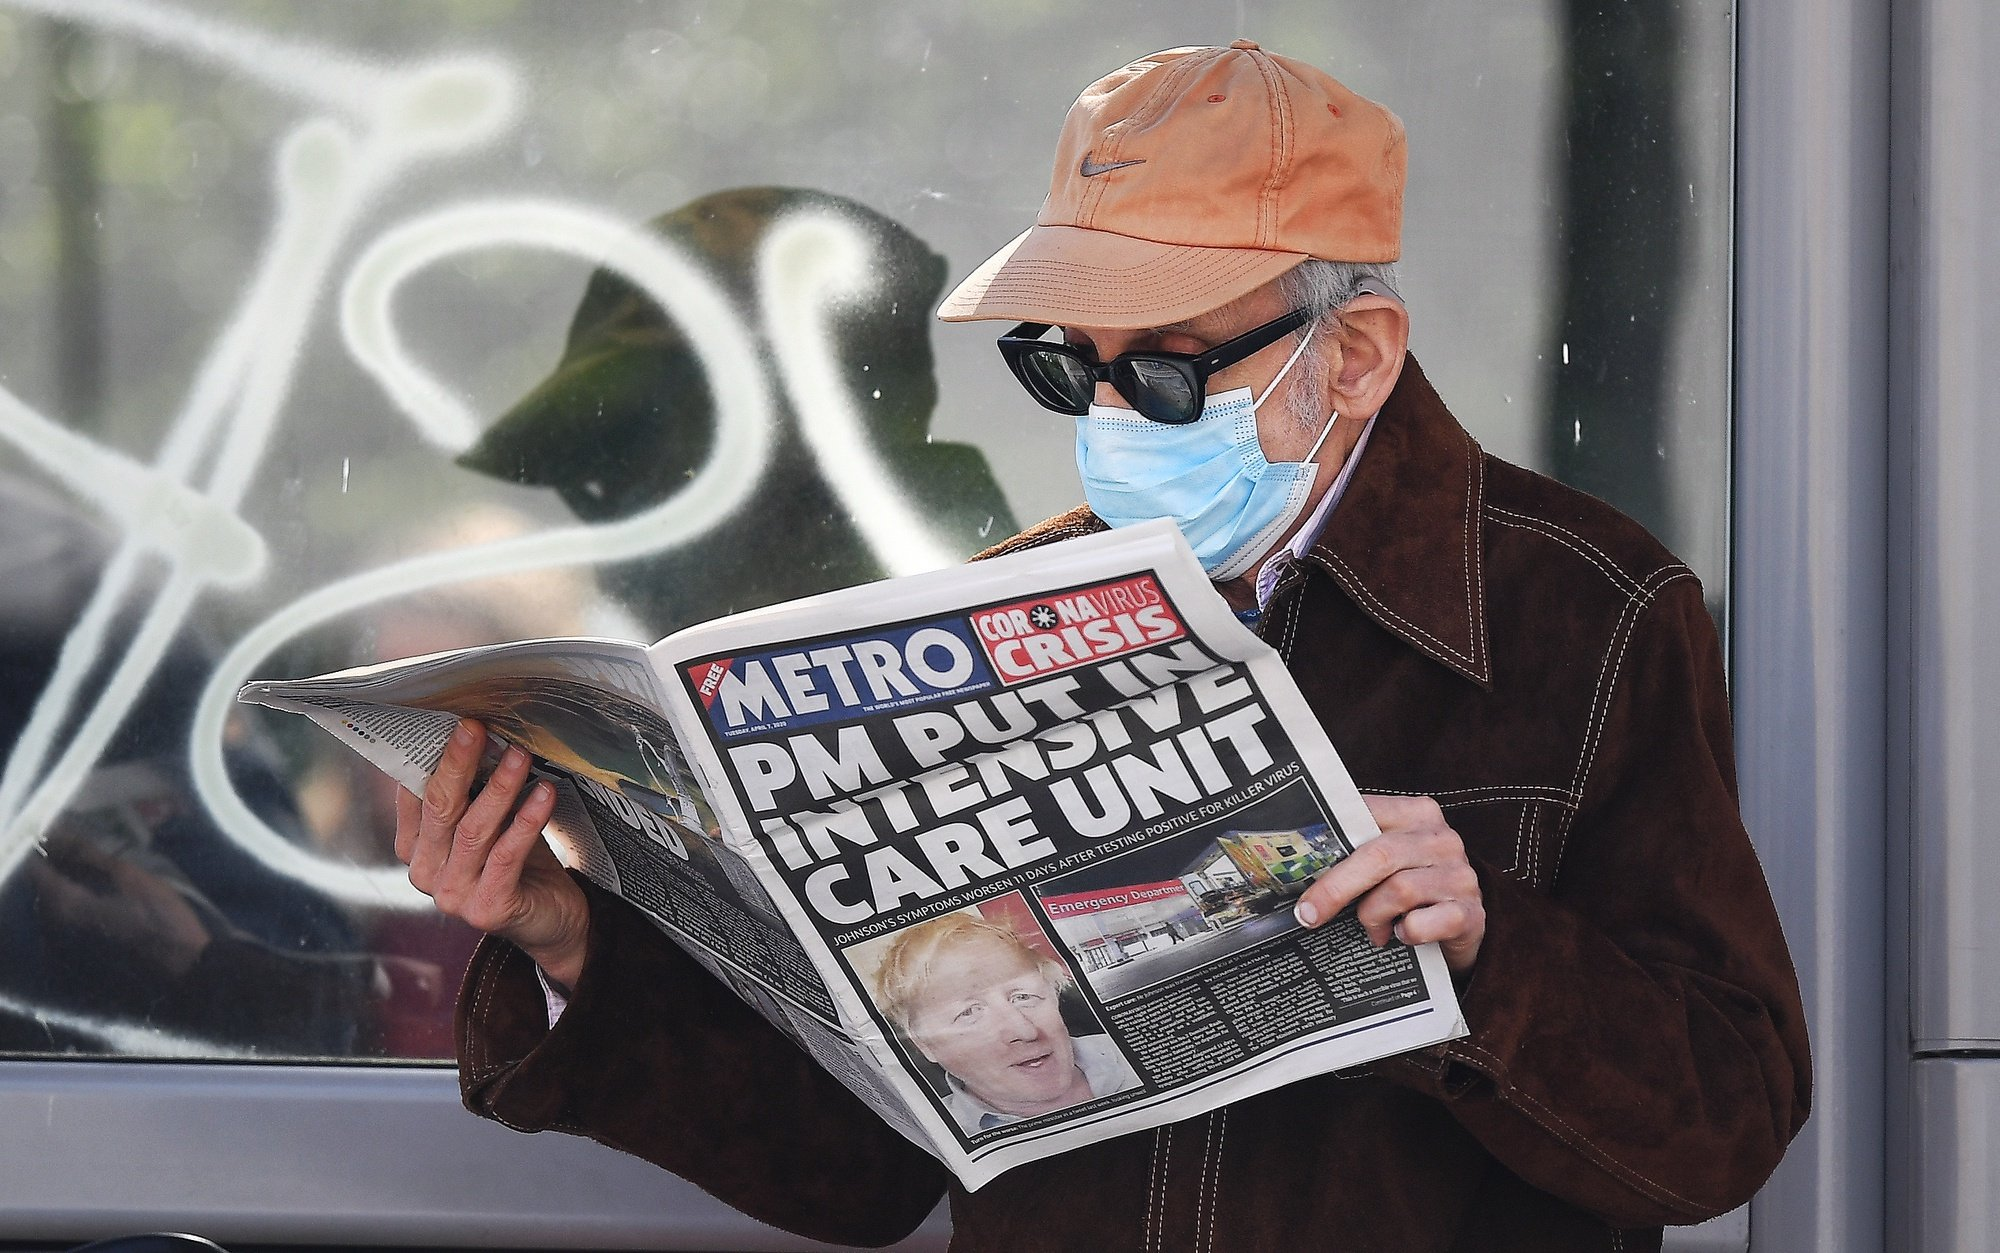 epa08347768 A man wearing a protective mask reads the news about British Prime Minister Boris Johnson's condition outside St.Thomas' Hospital in London, Britain, 07 April, 2020.  According to a statement by his office, British Prime Minister Boris Johnson was admitted into St. Thomas' Intensive Care Unit (ICU) on the evening of 06 April – 11 days after first having tested positive for the pandemic COVID-19 disease caused by the SARS-CoV-2 coronavirus – due to a worsening of his symptoms. First Secretary of State Dominic Raab, who also serves as Secretary of State for Foreign and Commonwealth Affairs, will be deputizing for Johnson when needed, the statement added.  EPA/ANDY RAIN